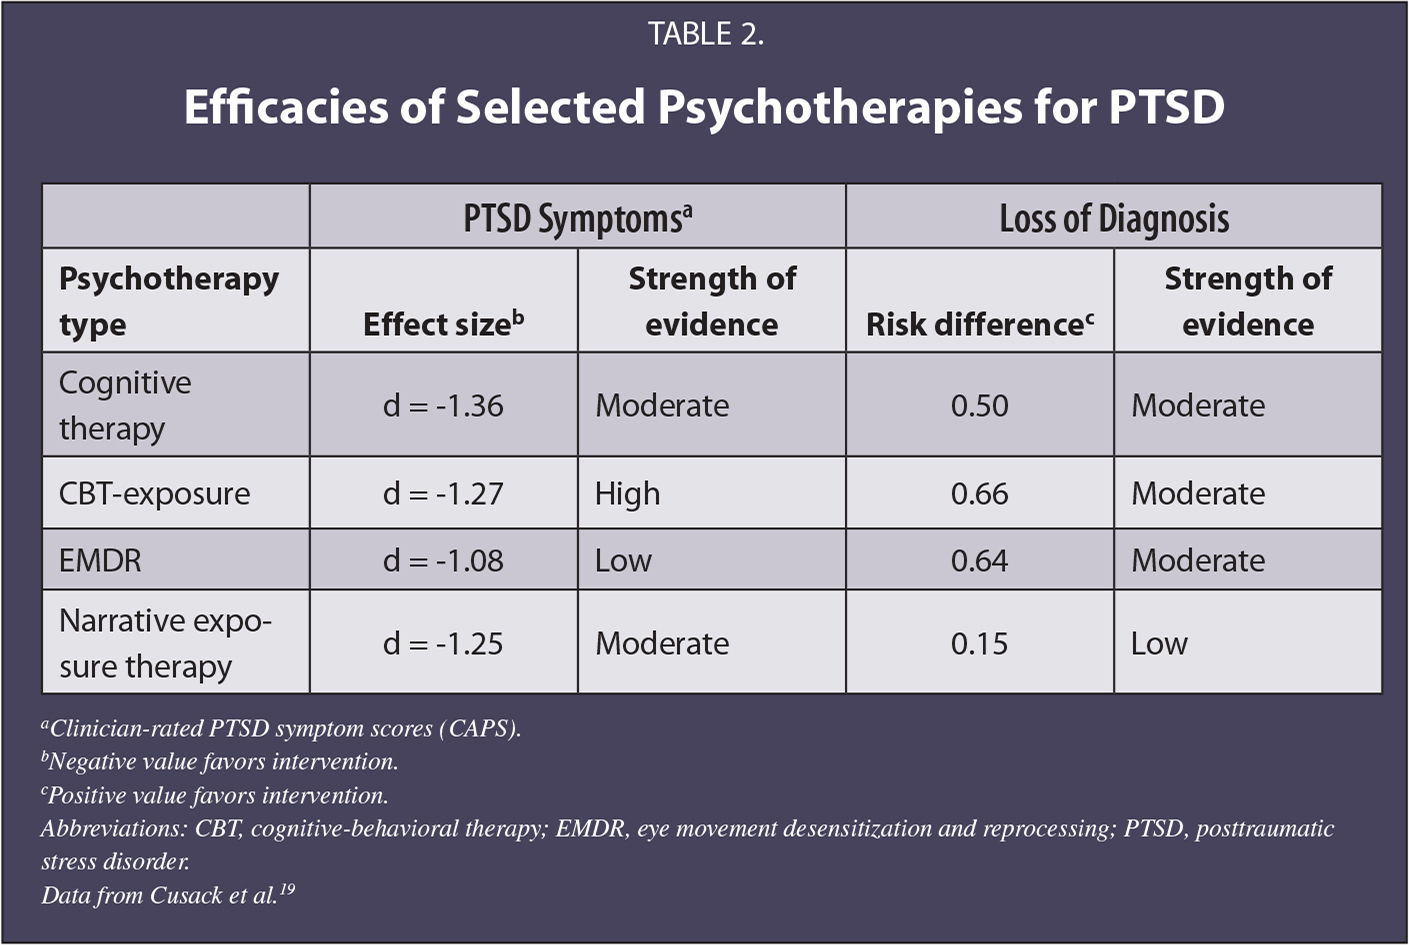 Efficacies of Selected Psychotherapies for PTSD